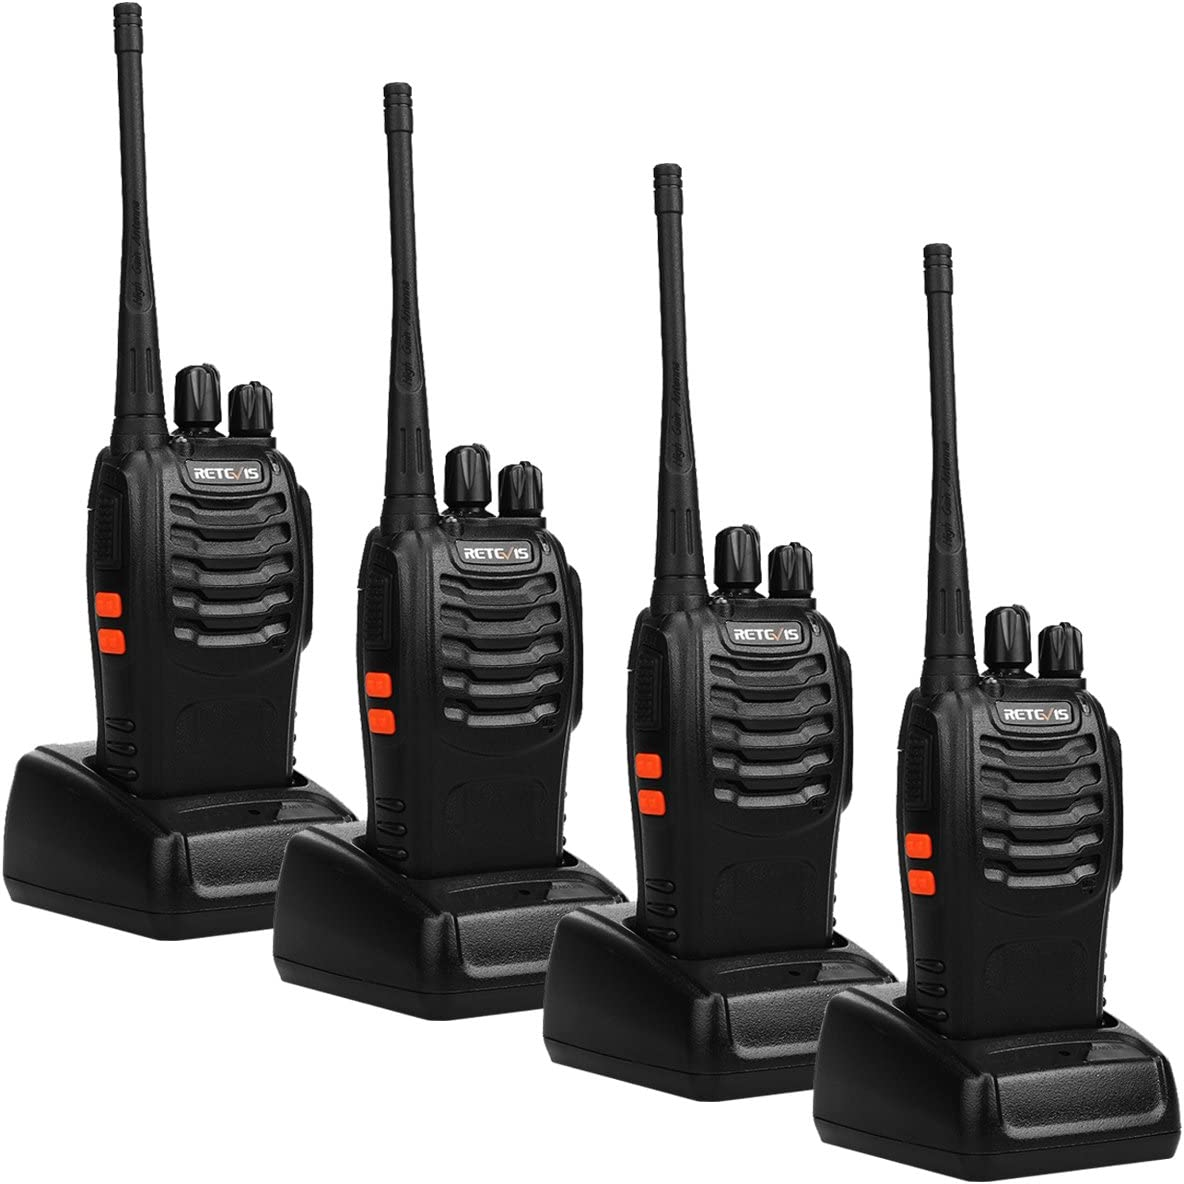 Retevis H-777 Walkie Talkies for Adults Rechargeable 4 Pack, Long Range Two-Way Radios USB Charger 16CH Flashlight Handheld 2 Way Radio